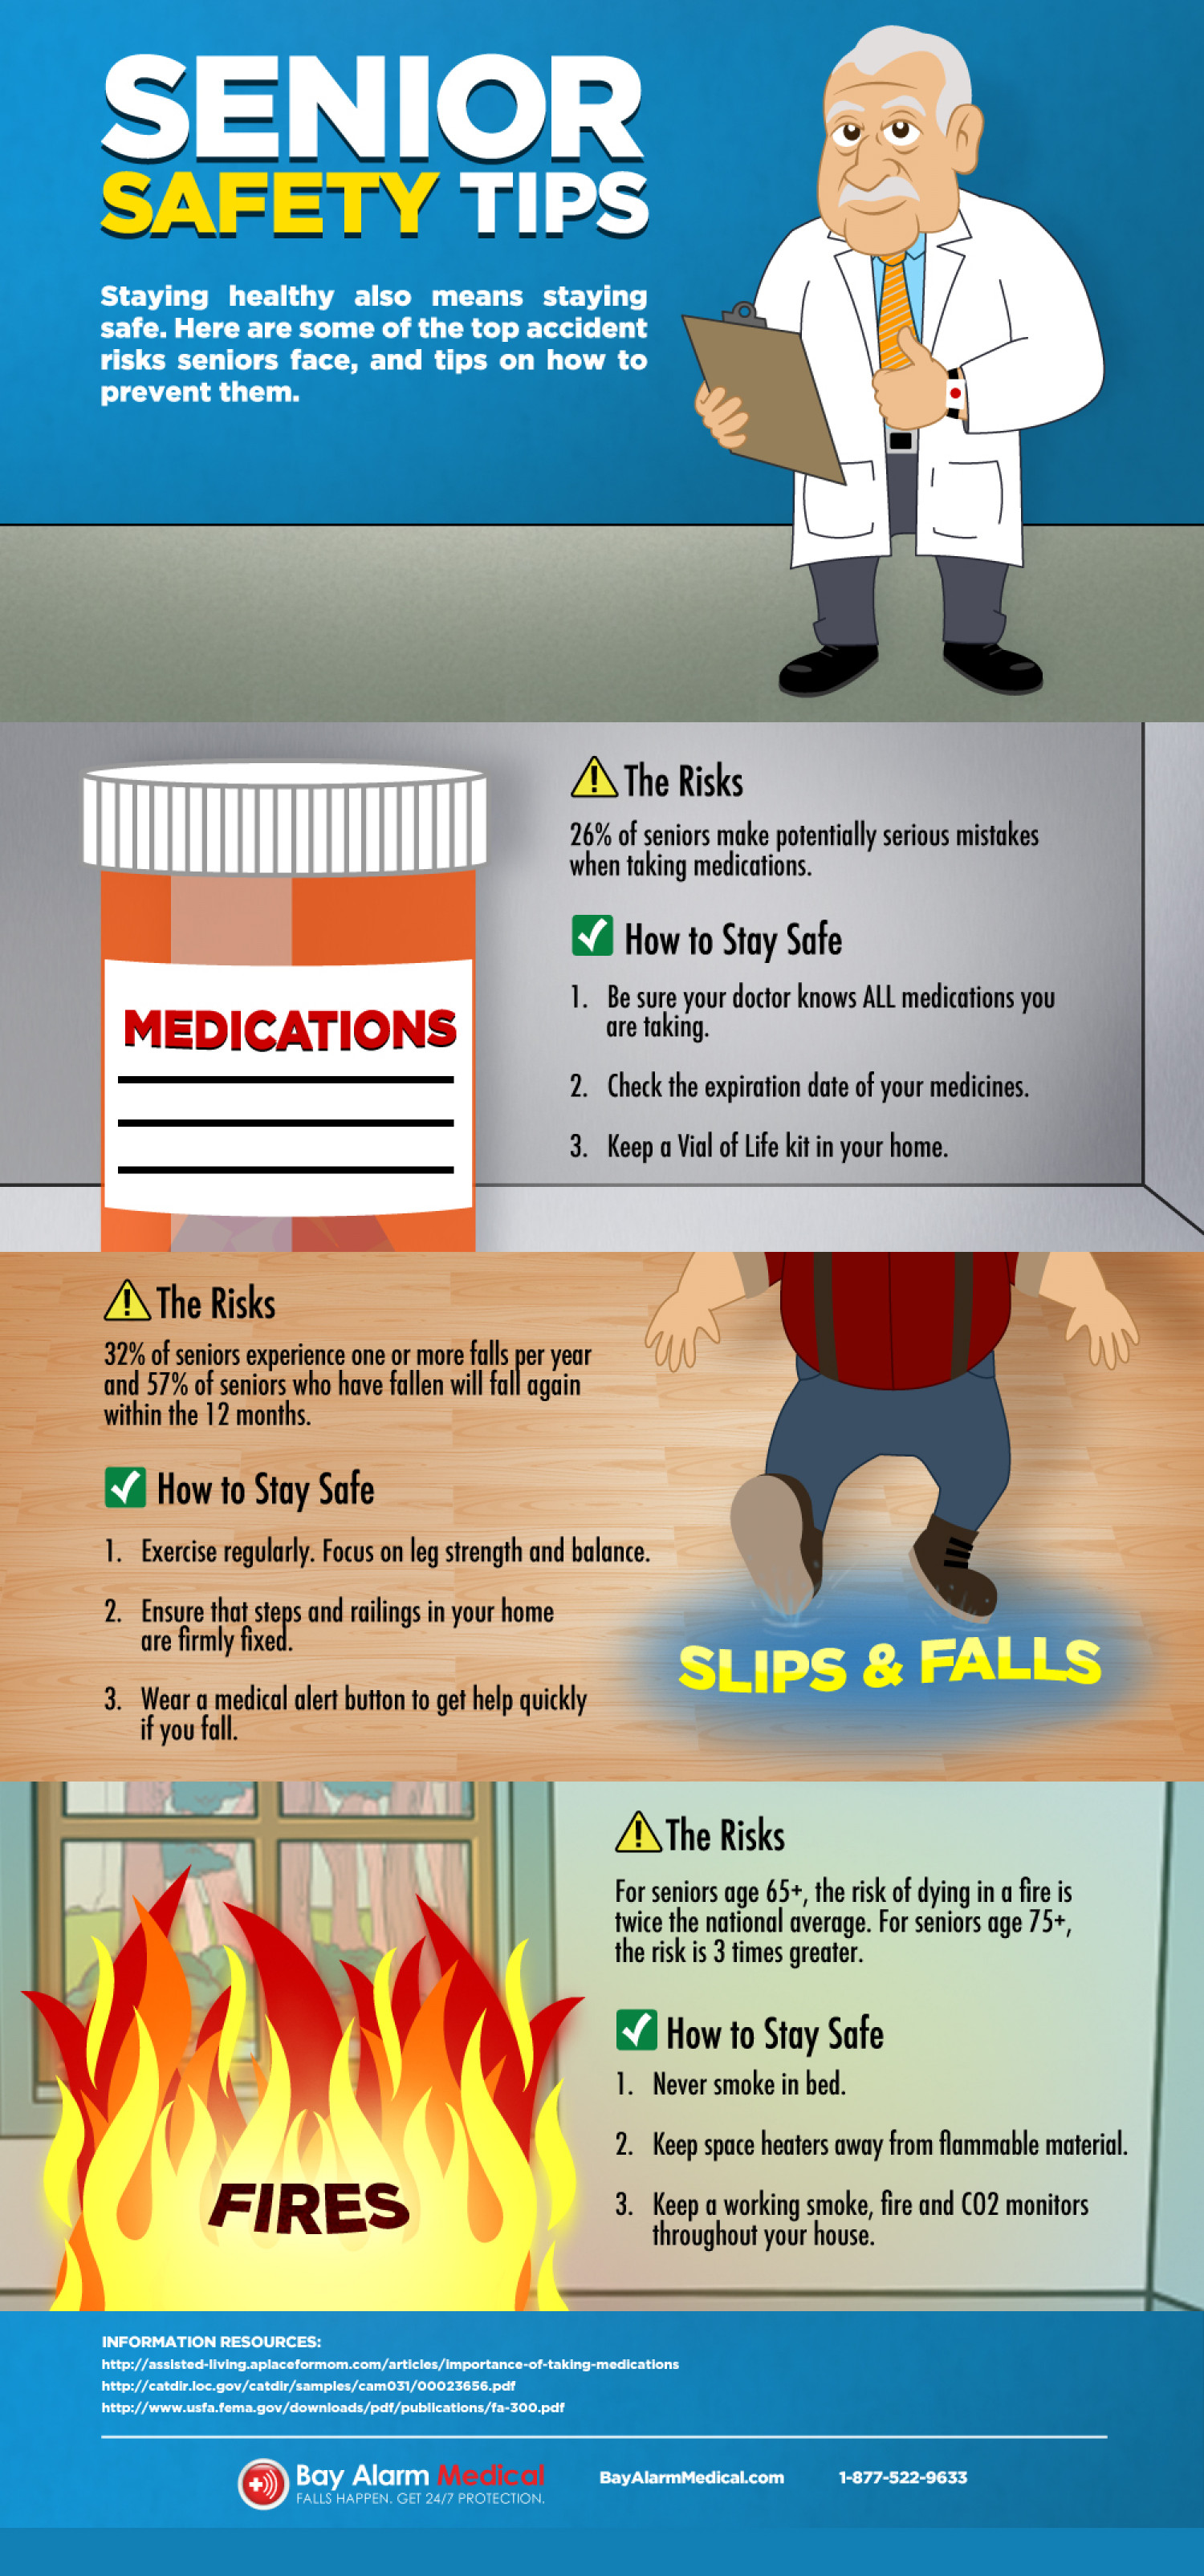 Senior Safety Risks Amp Tips For Staying Safe